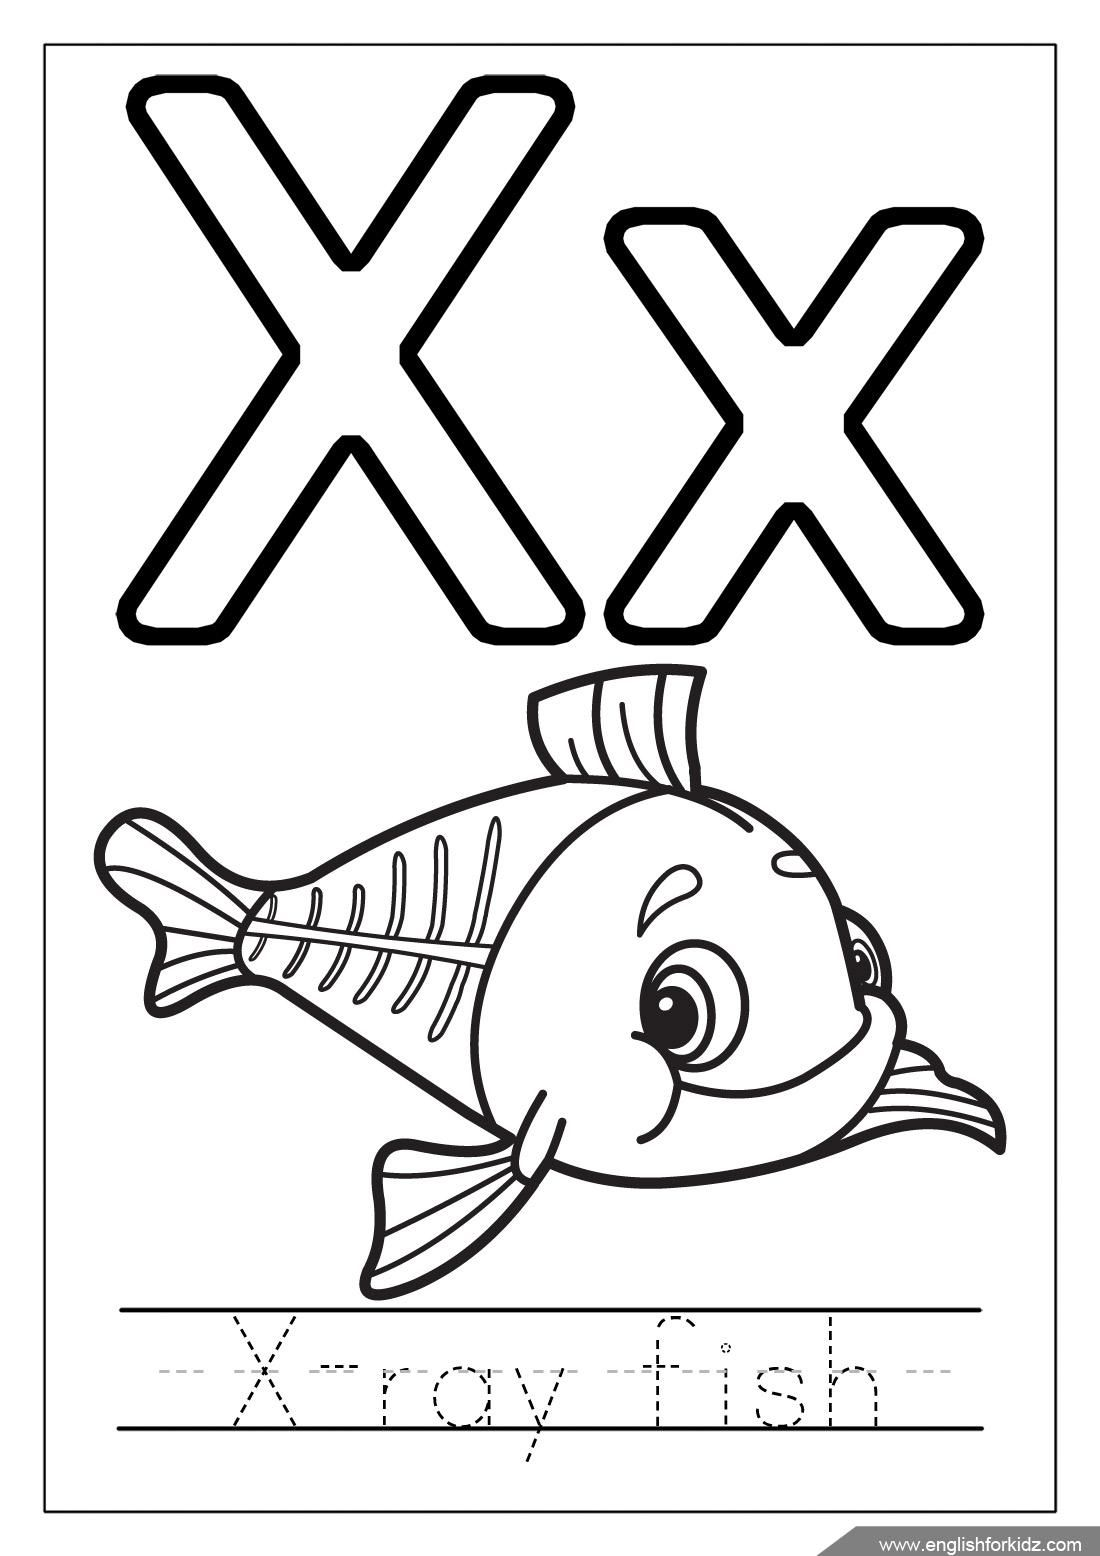 Awesome Coloring Page Of A X Ray That You Must Know You